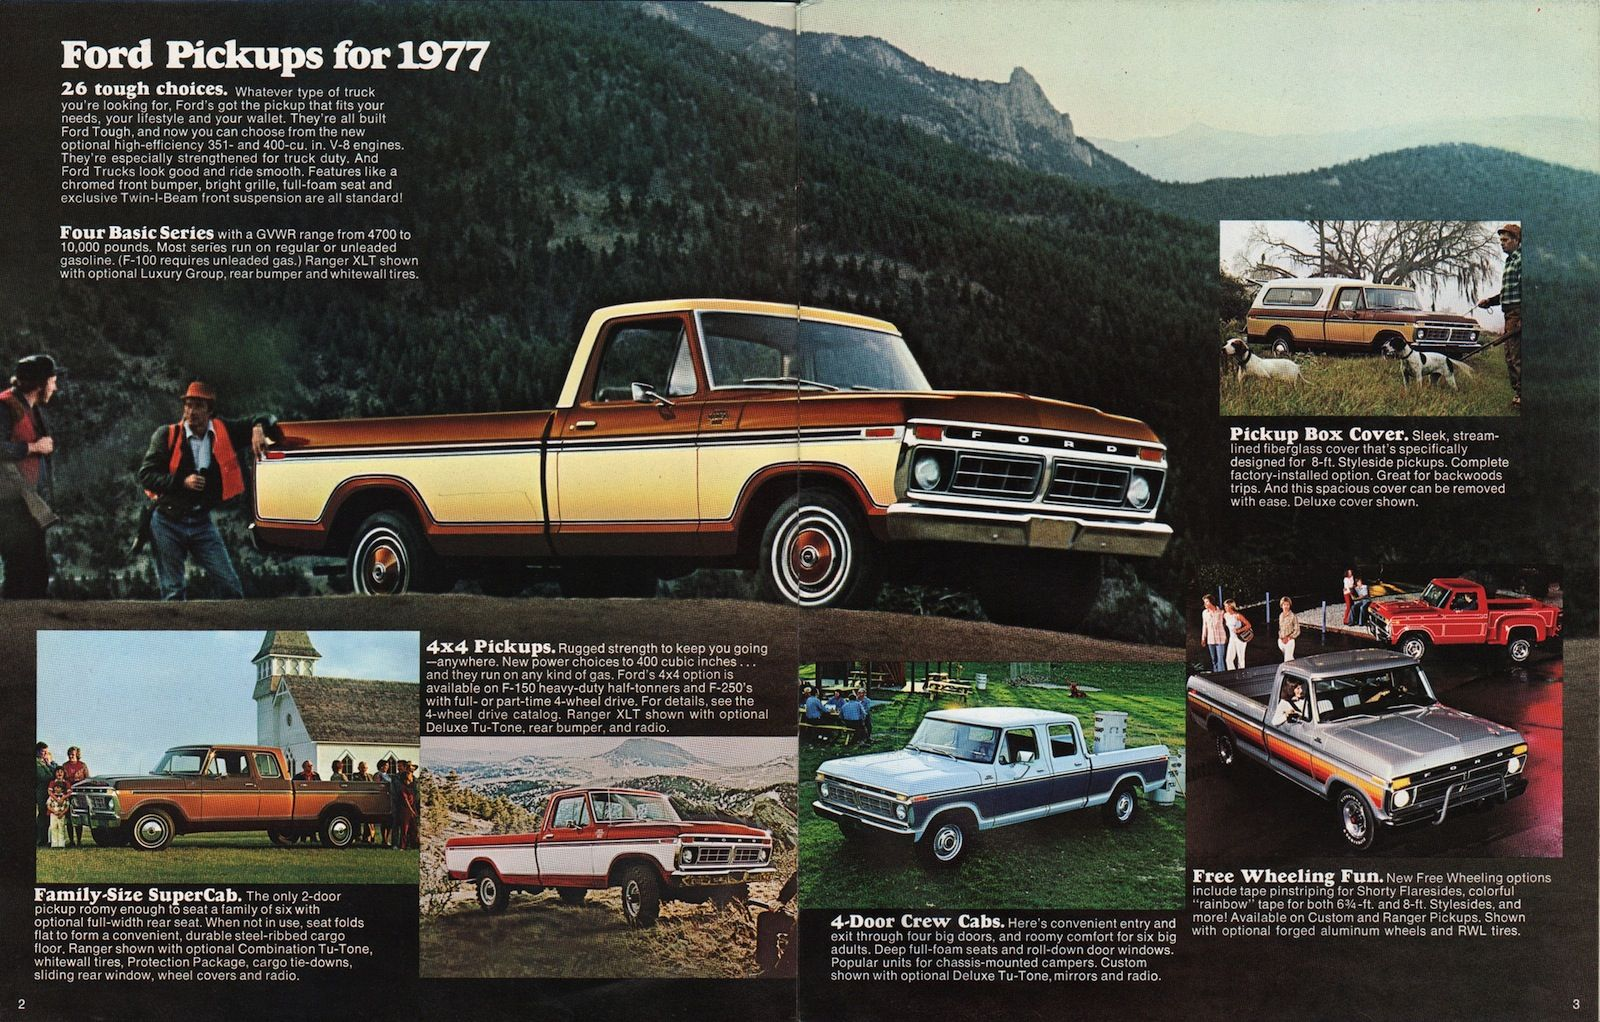 1977 Pickup Ford Truck Sales Brochure Ford Pickup Ford Pickup Trucks Trucks